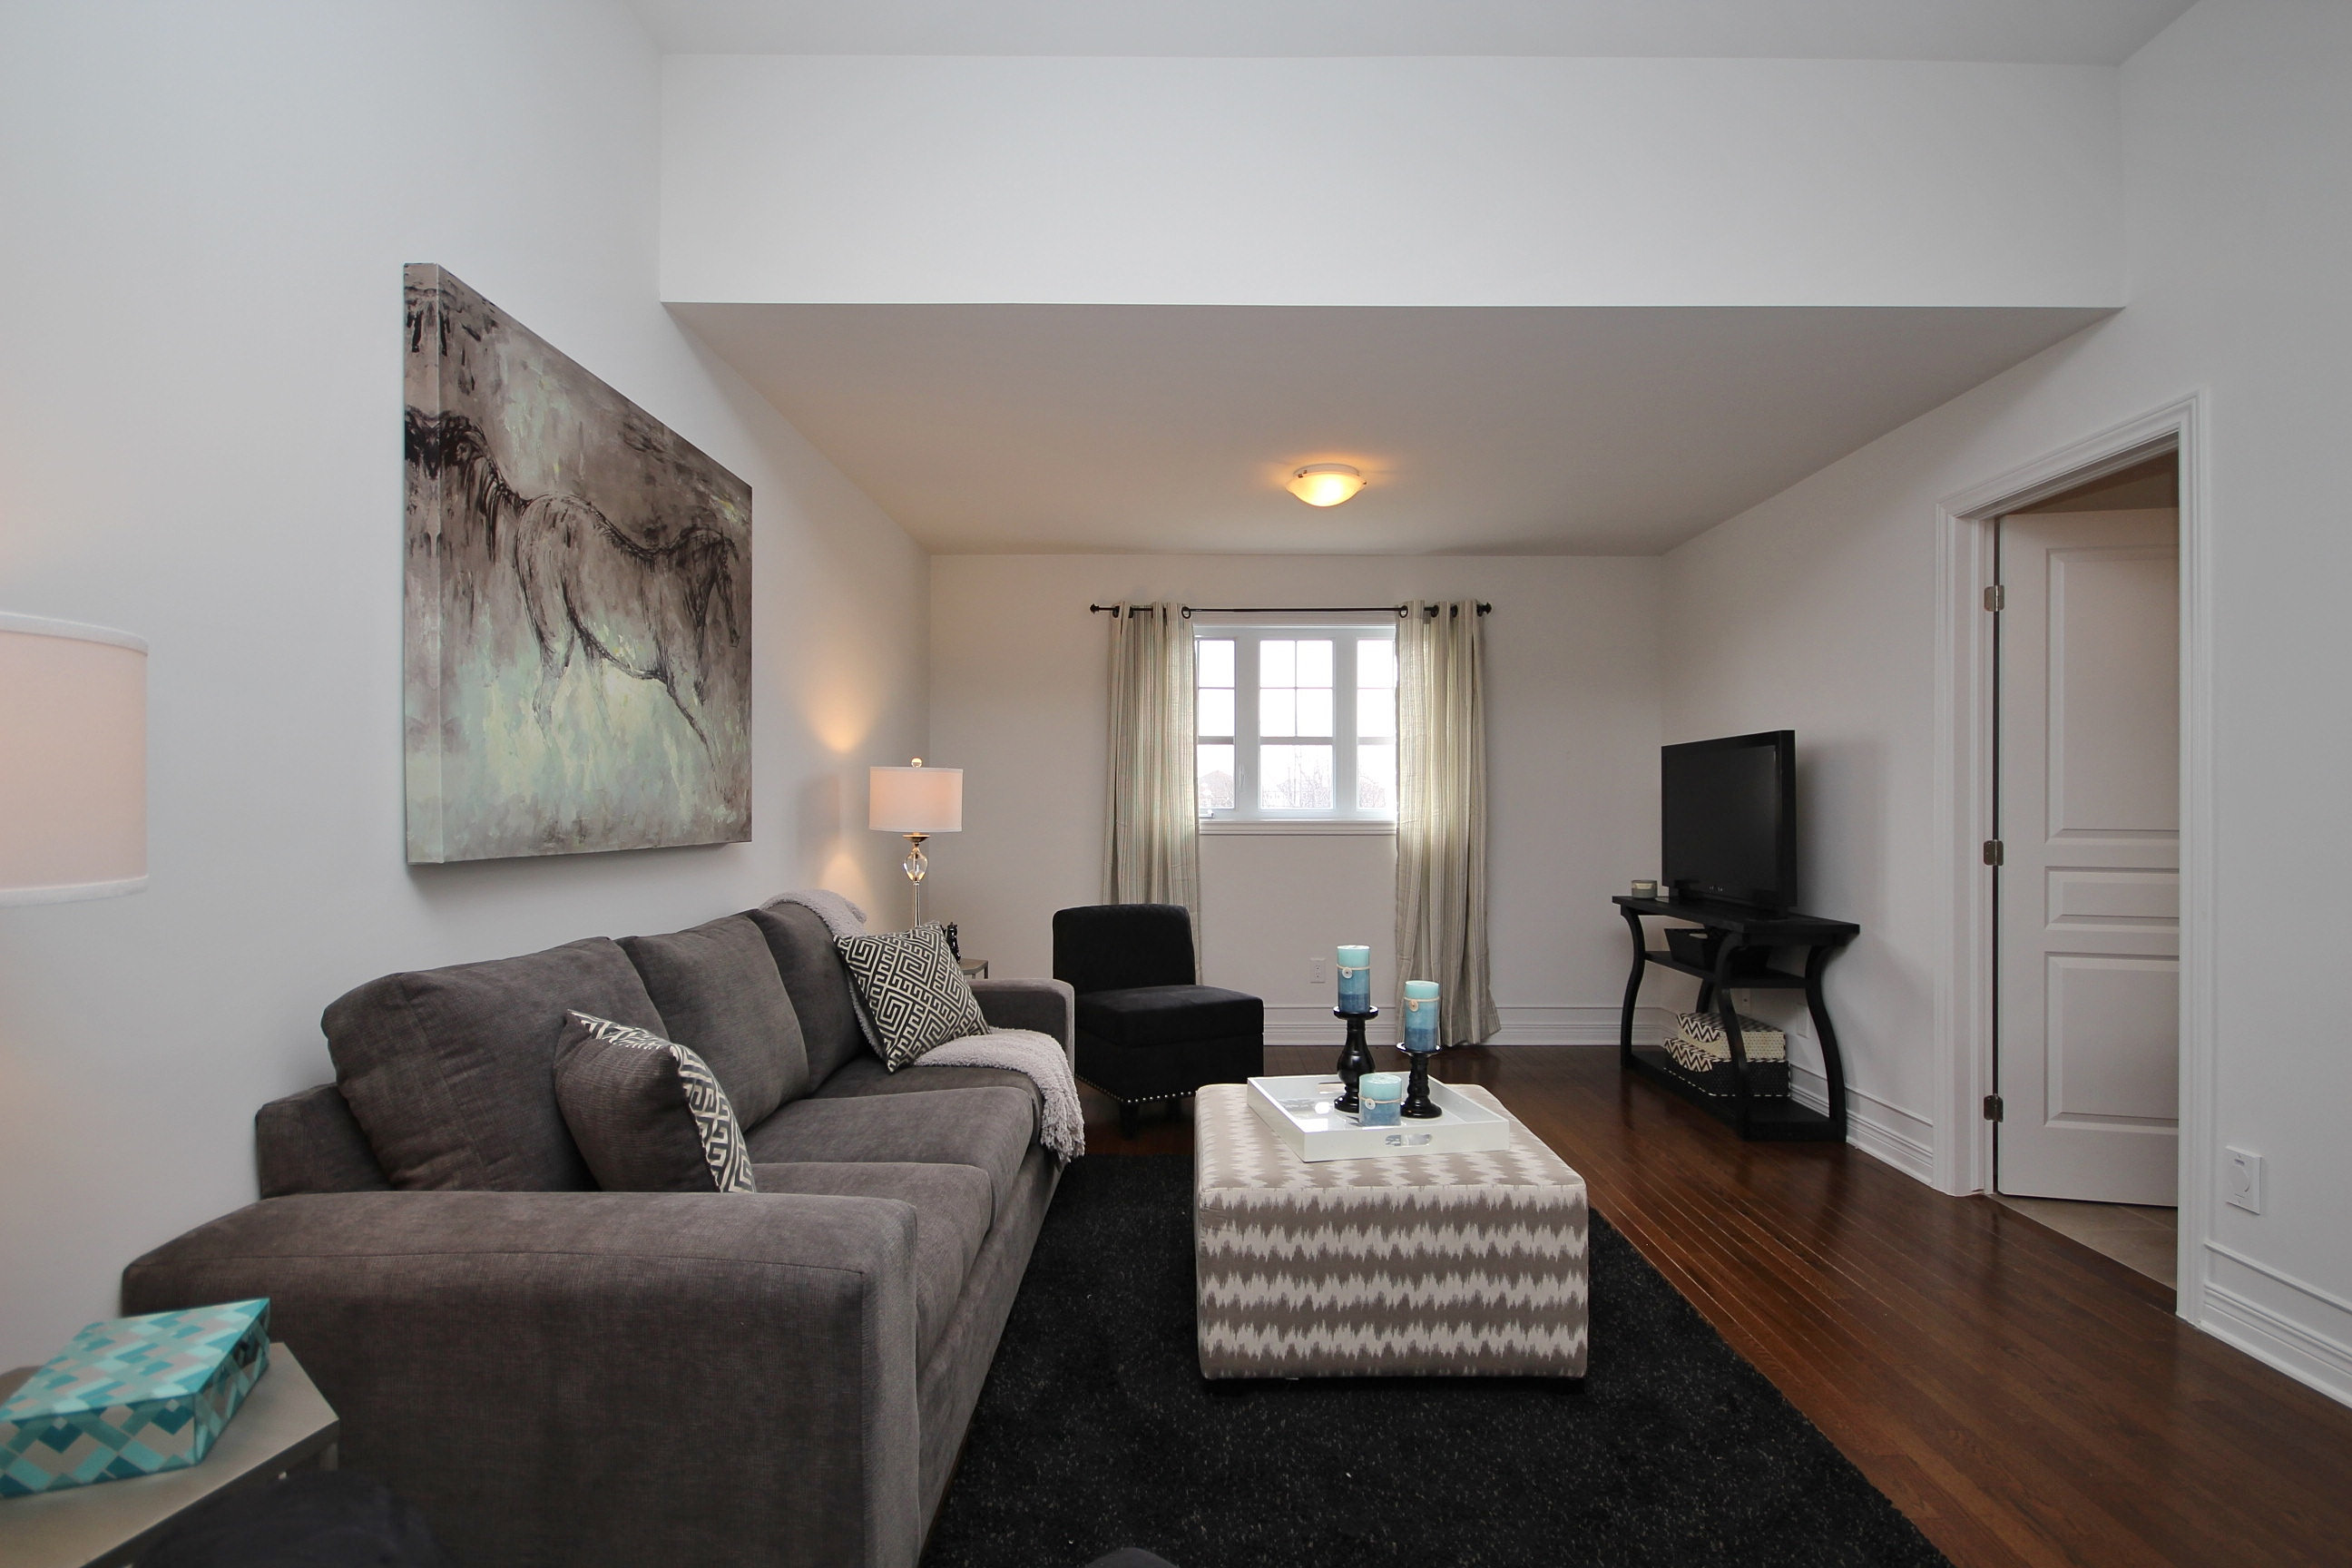 capital home staging design ottawa home stager loft tv room